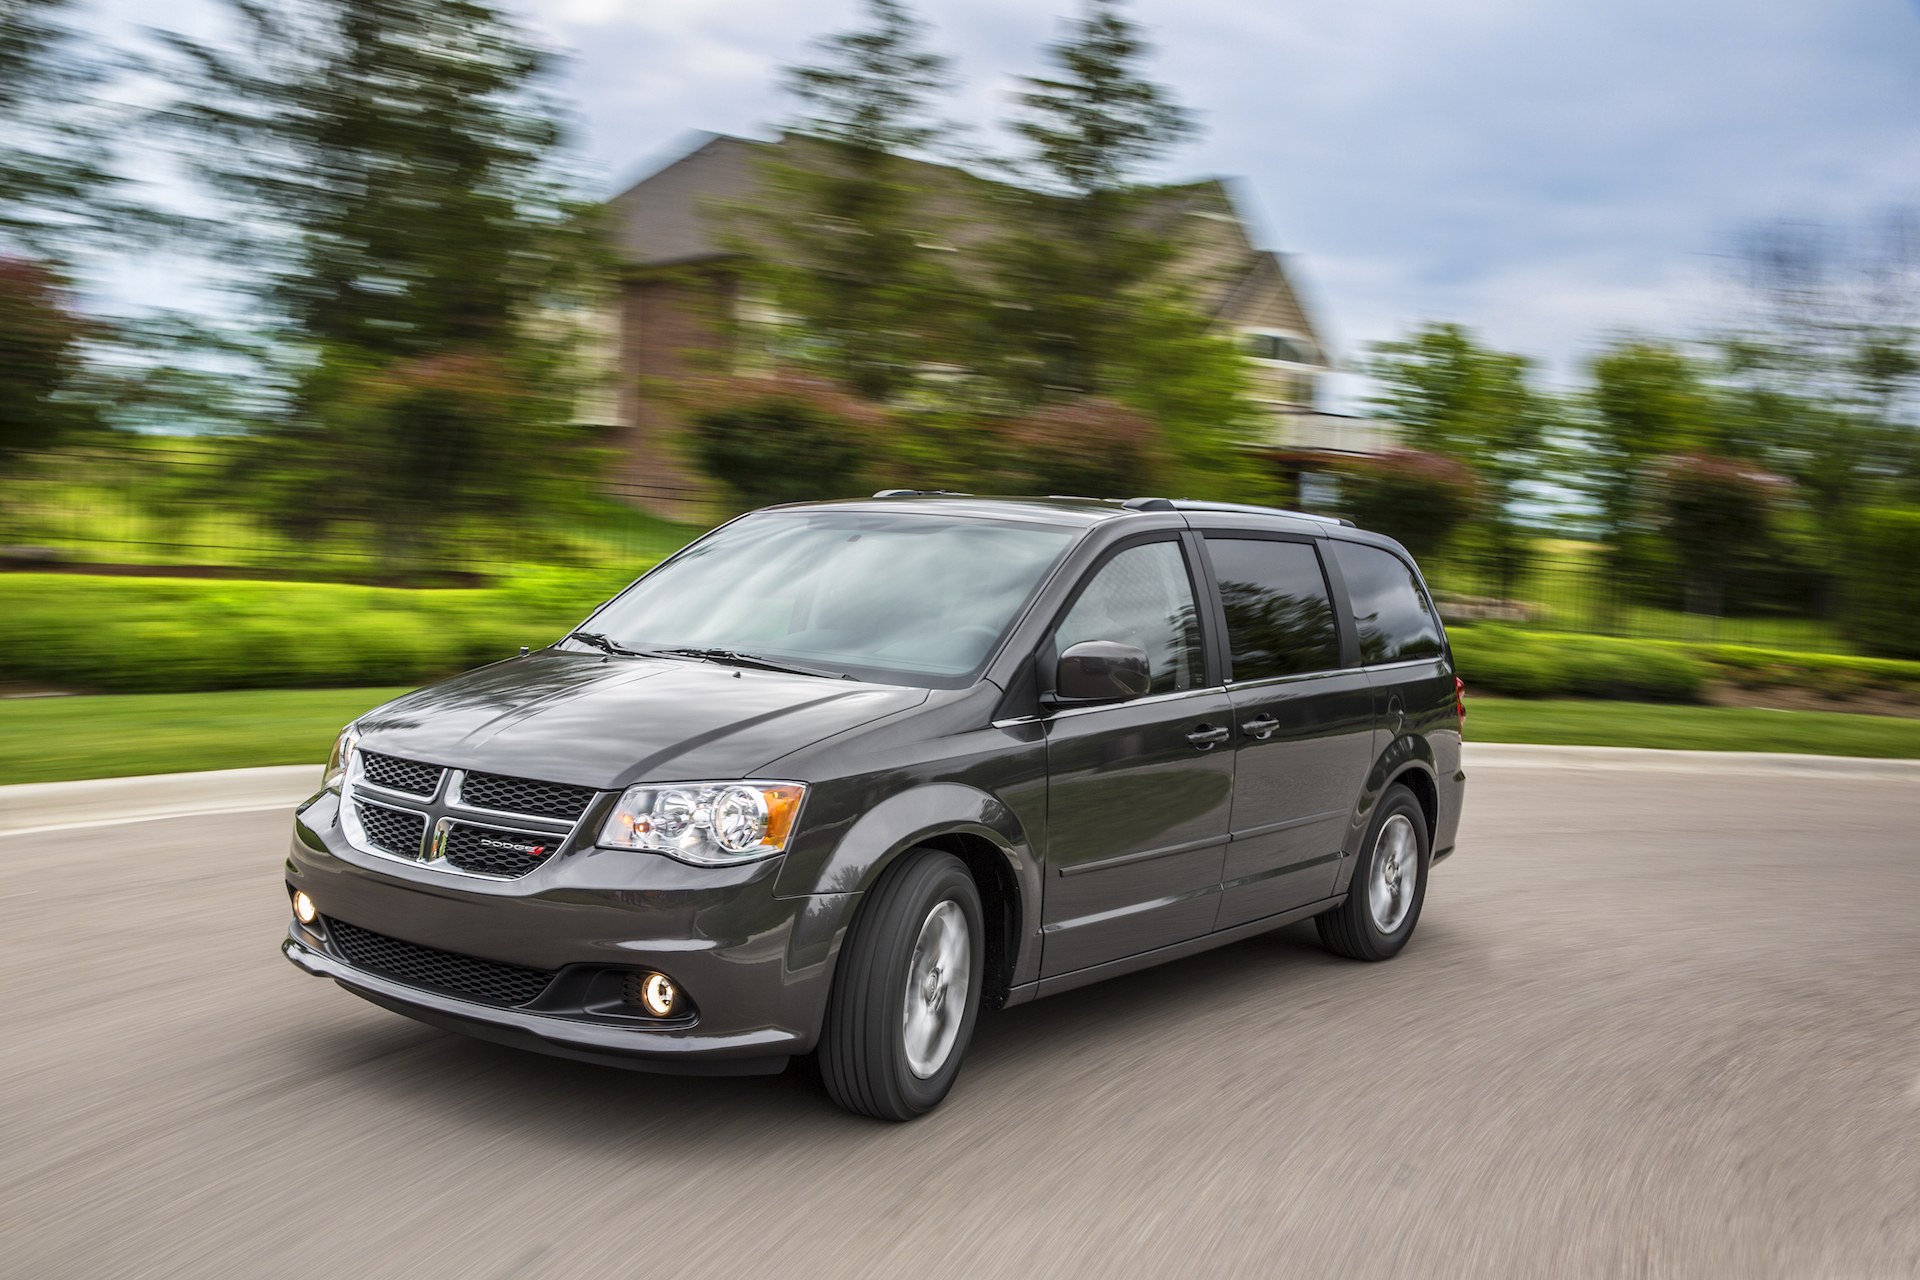 2017 Dodge Grand Caravan Review Ratings Specs Prices And Photos The Car Connection